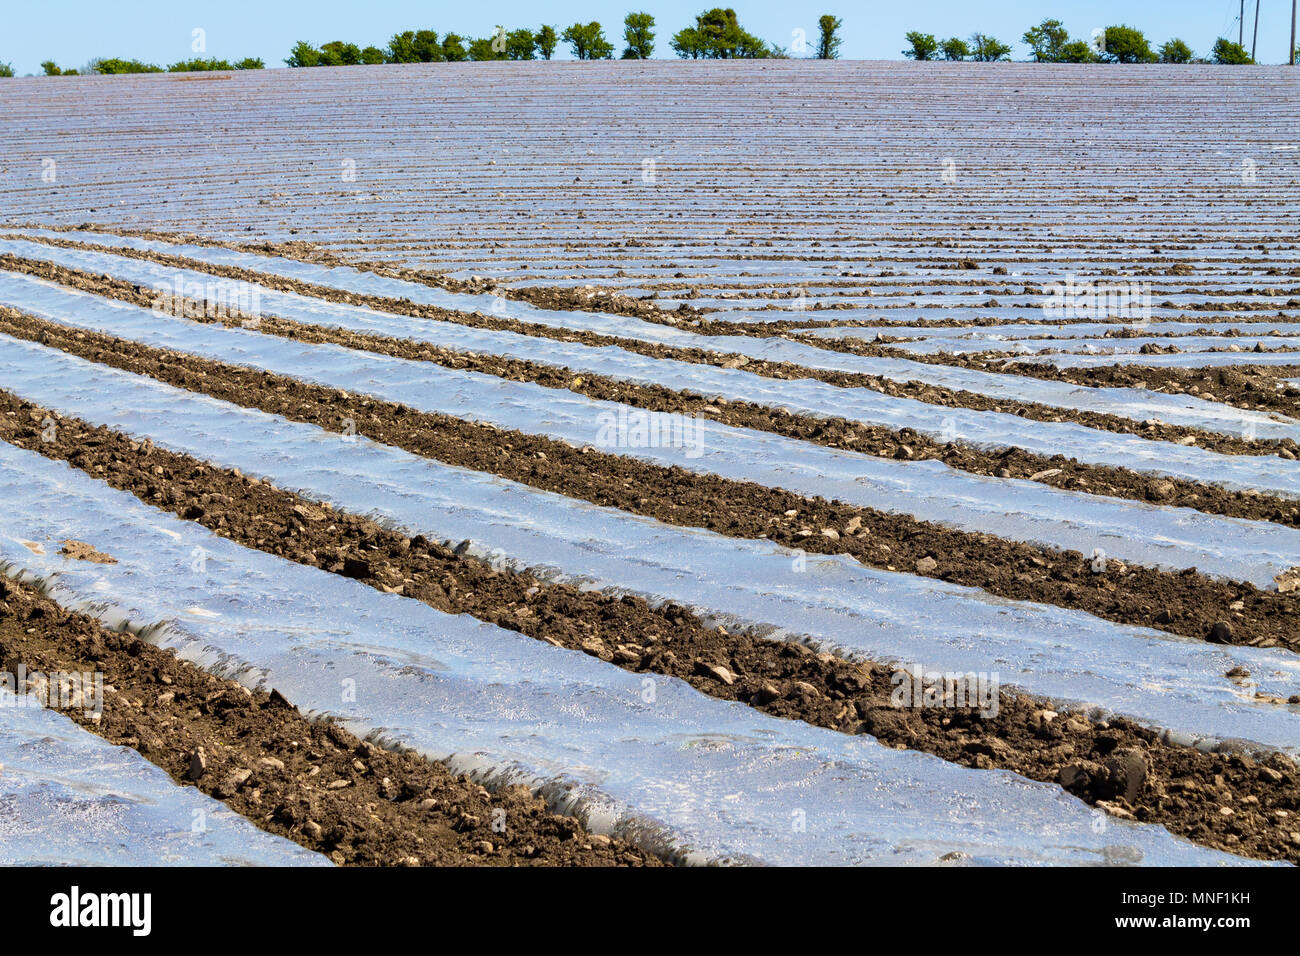 ireland-farmers-field-with-rows-of-biodegradable-plastic-sheeting-strips-covering-the-ground-to-warm-it-and-act-as-frost-protection-for-the-maize-crop-MNF1KH.jpg